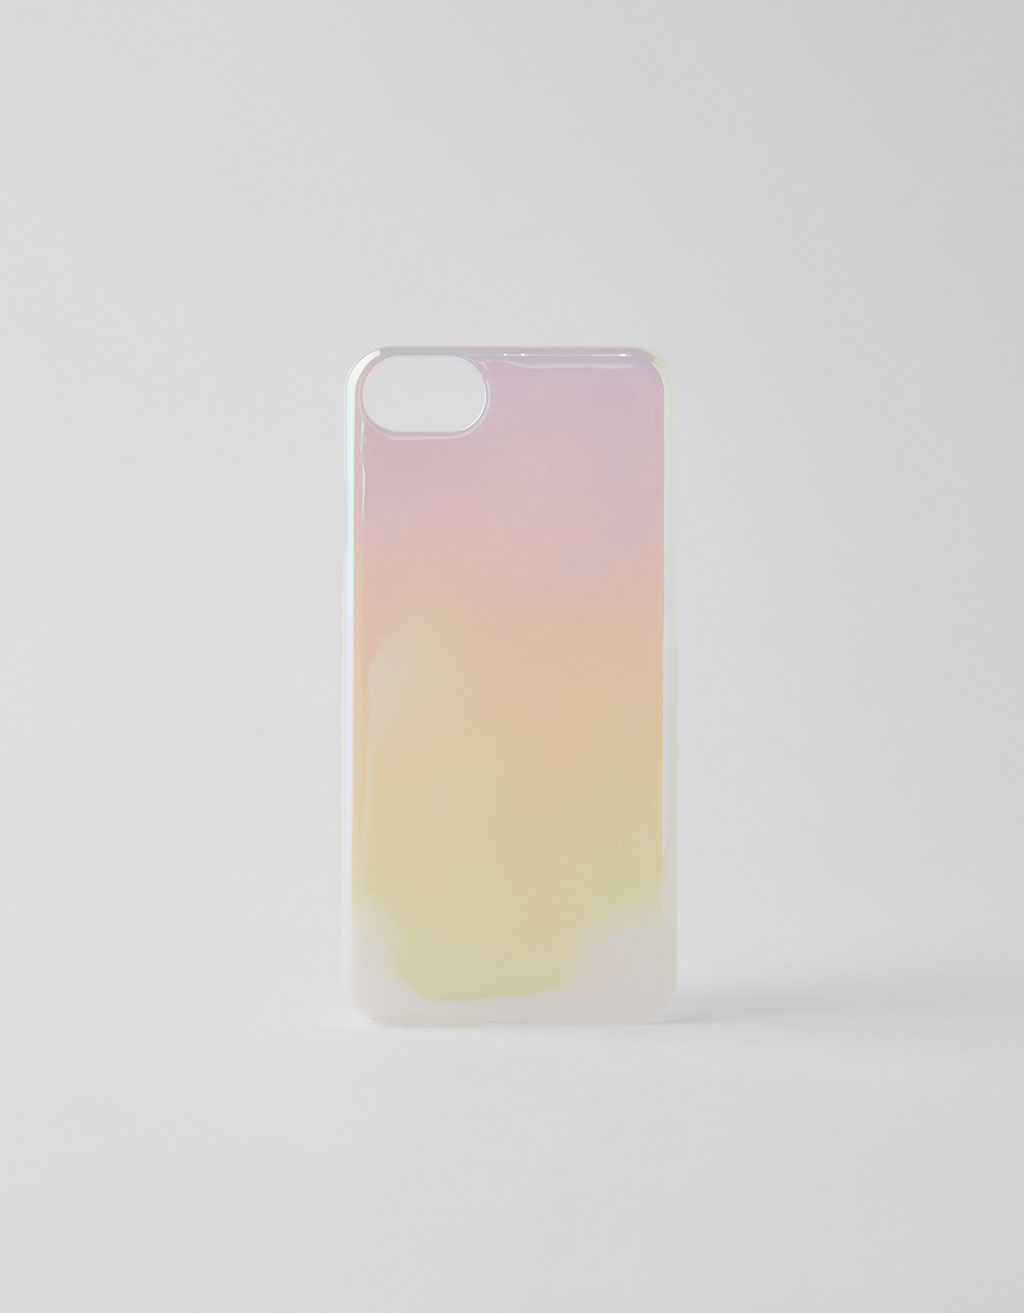 Carcasa iridescente iPhone 6/6s/7/8